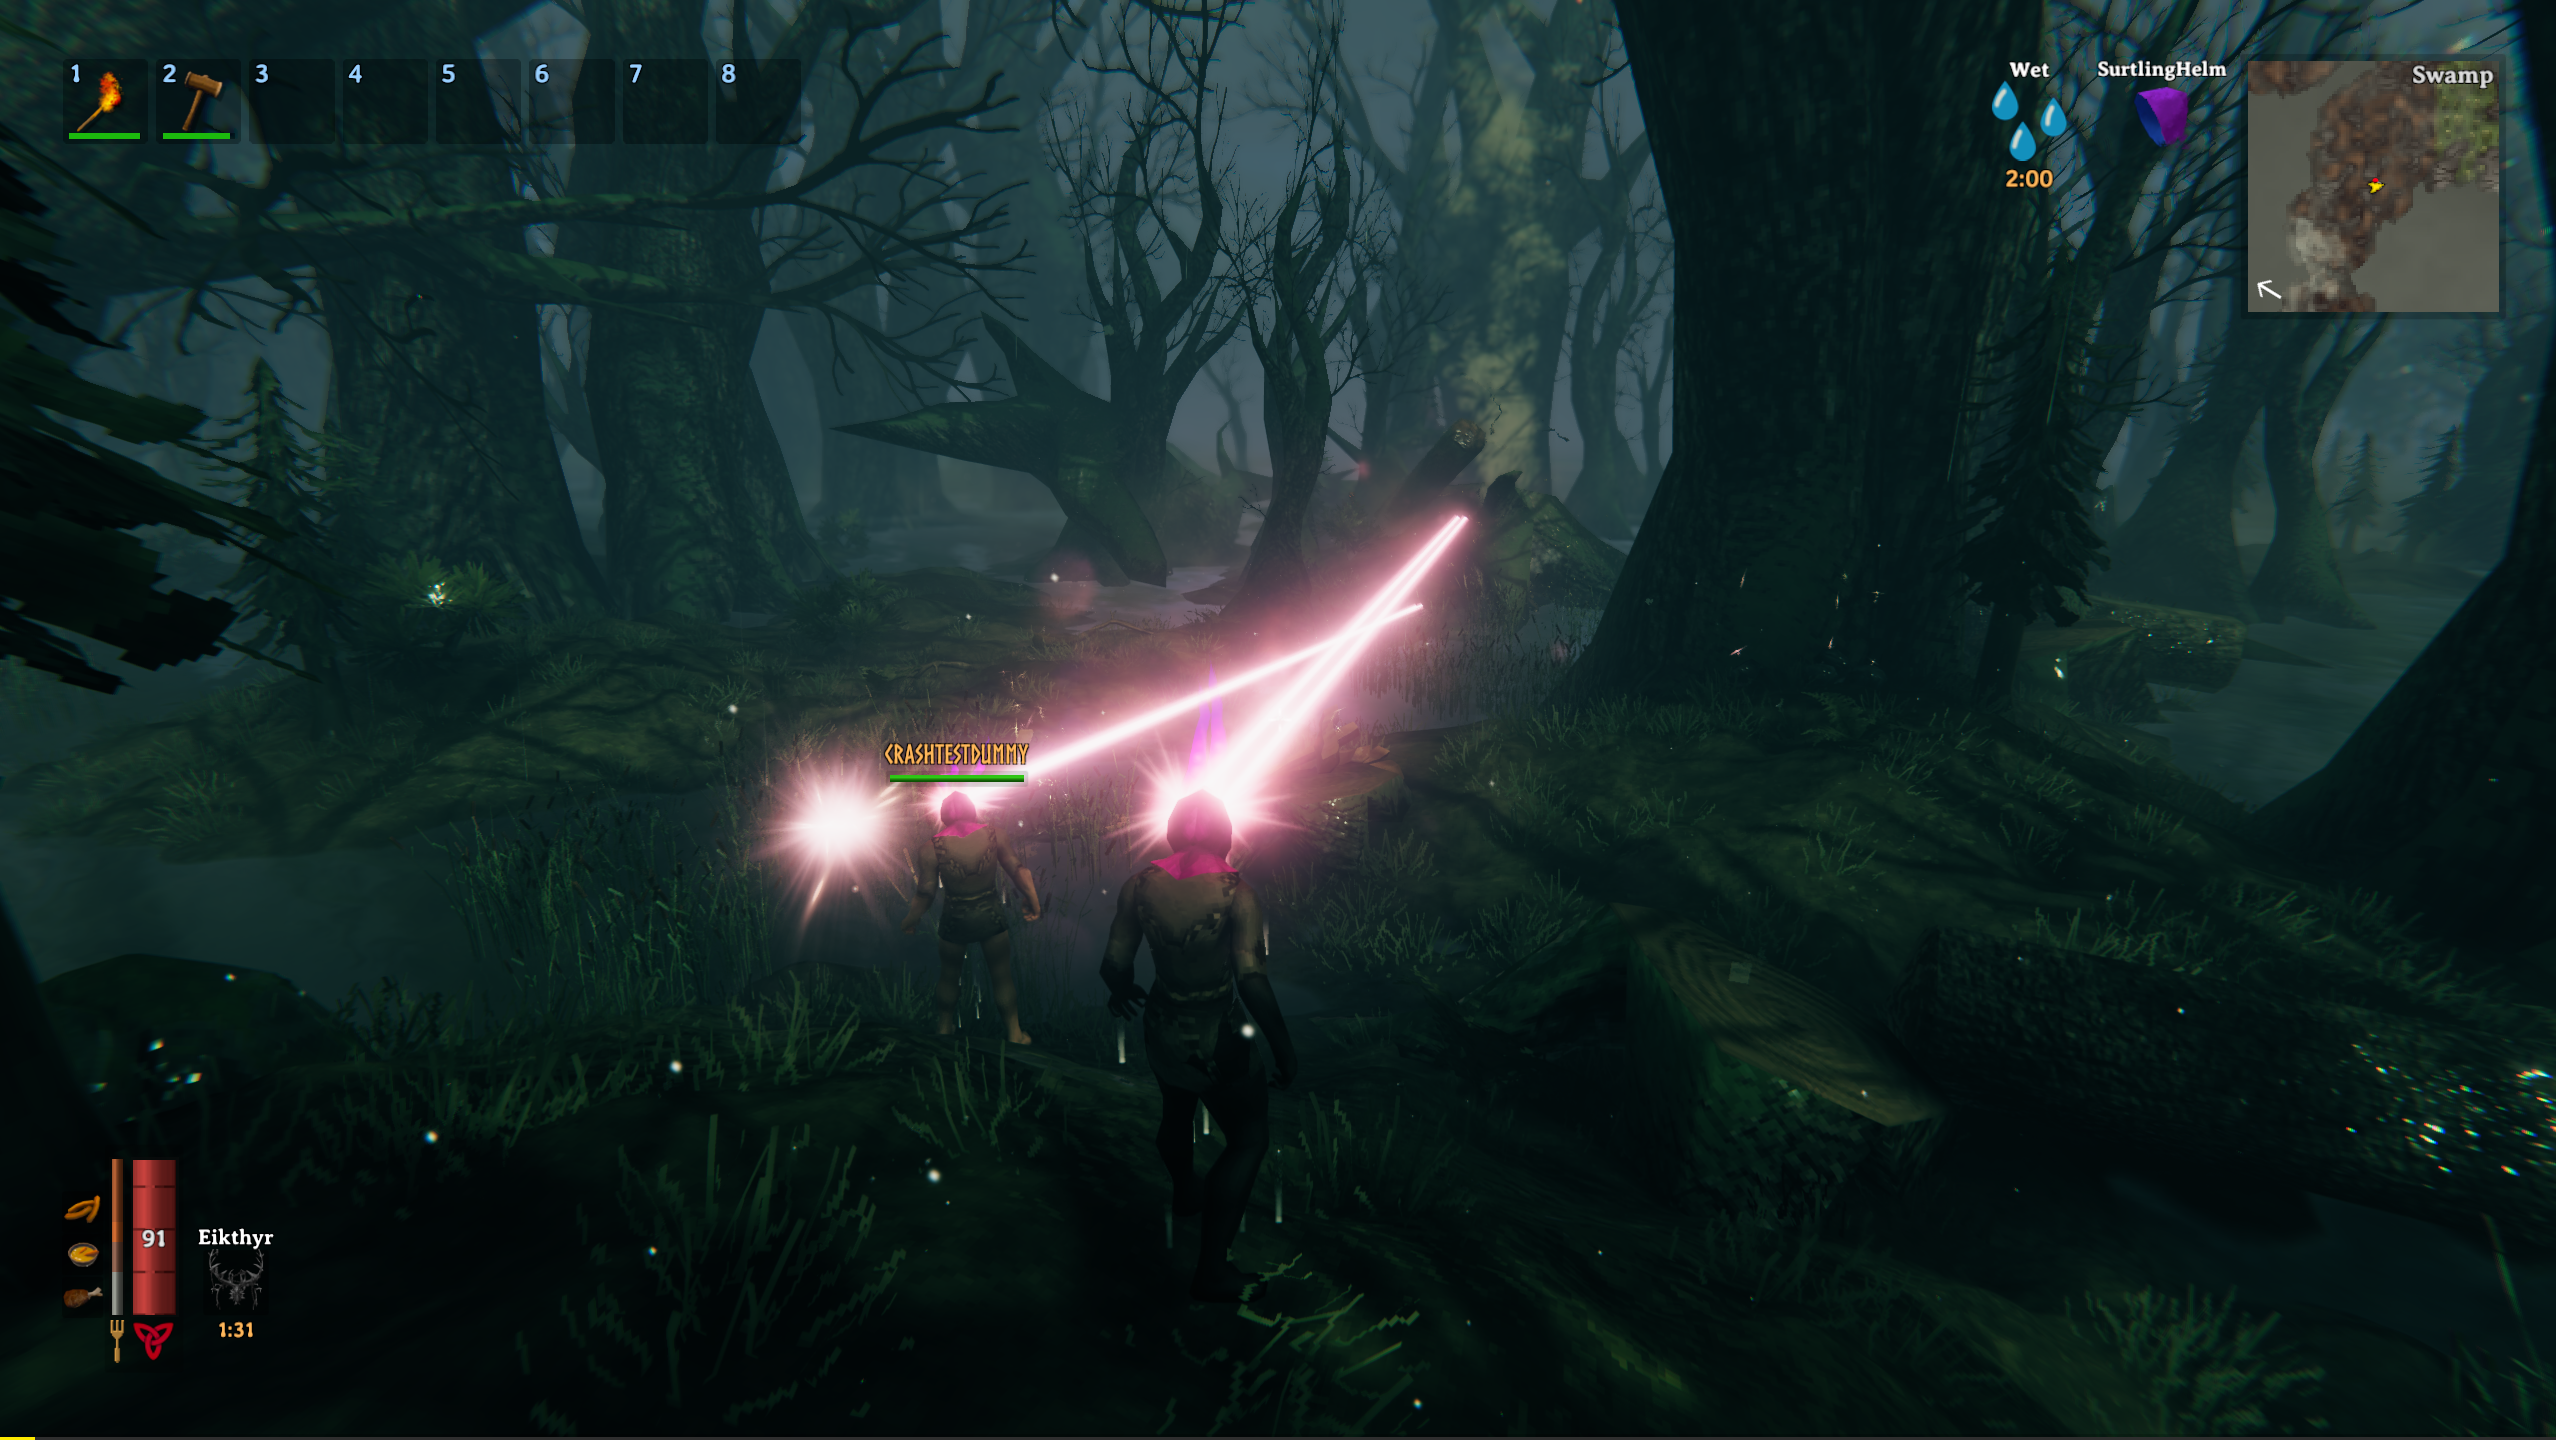 Two incredibly cool vikings with glowing helms lasering down enemies in a swamp